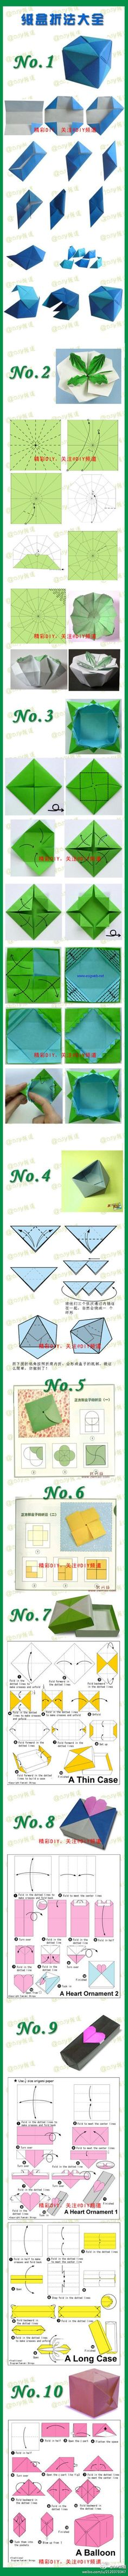 580 Best Origami Tutorials 2 Images On Pinterest Tutorial Christmas Star Tavin39s Several Diagrams Scroll Down For Hearts Guide Diy Paper Crafts